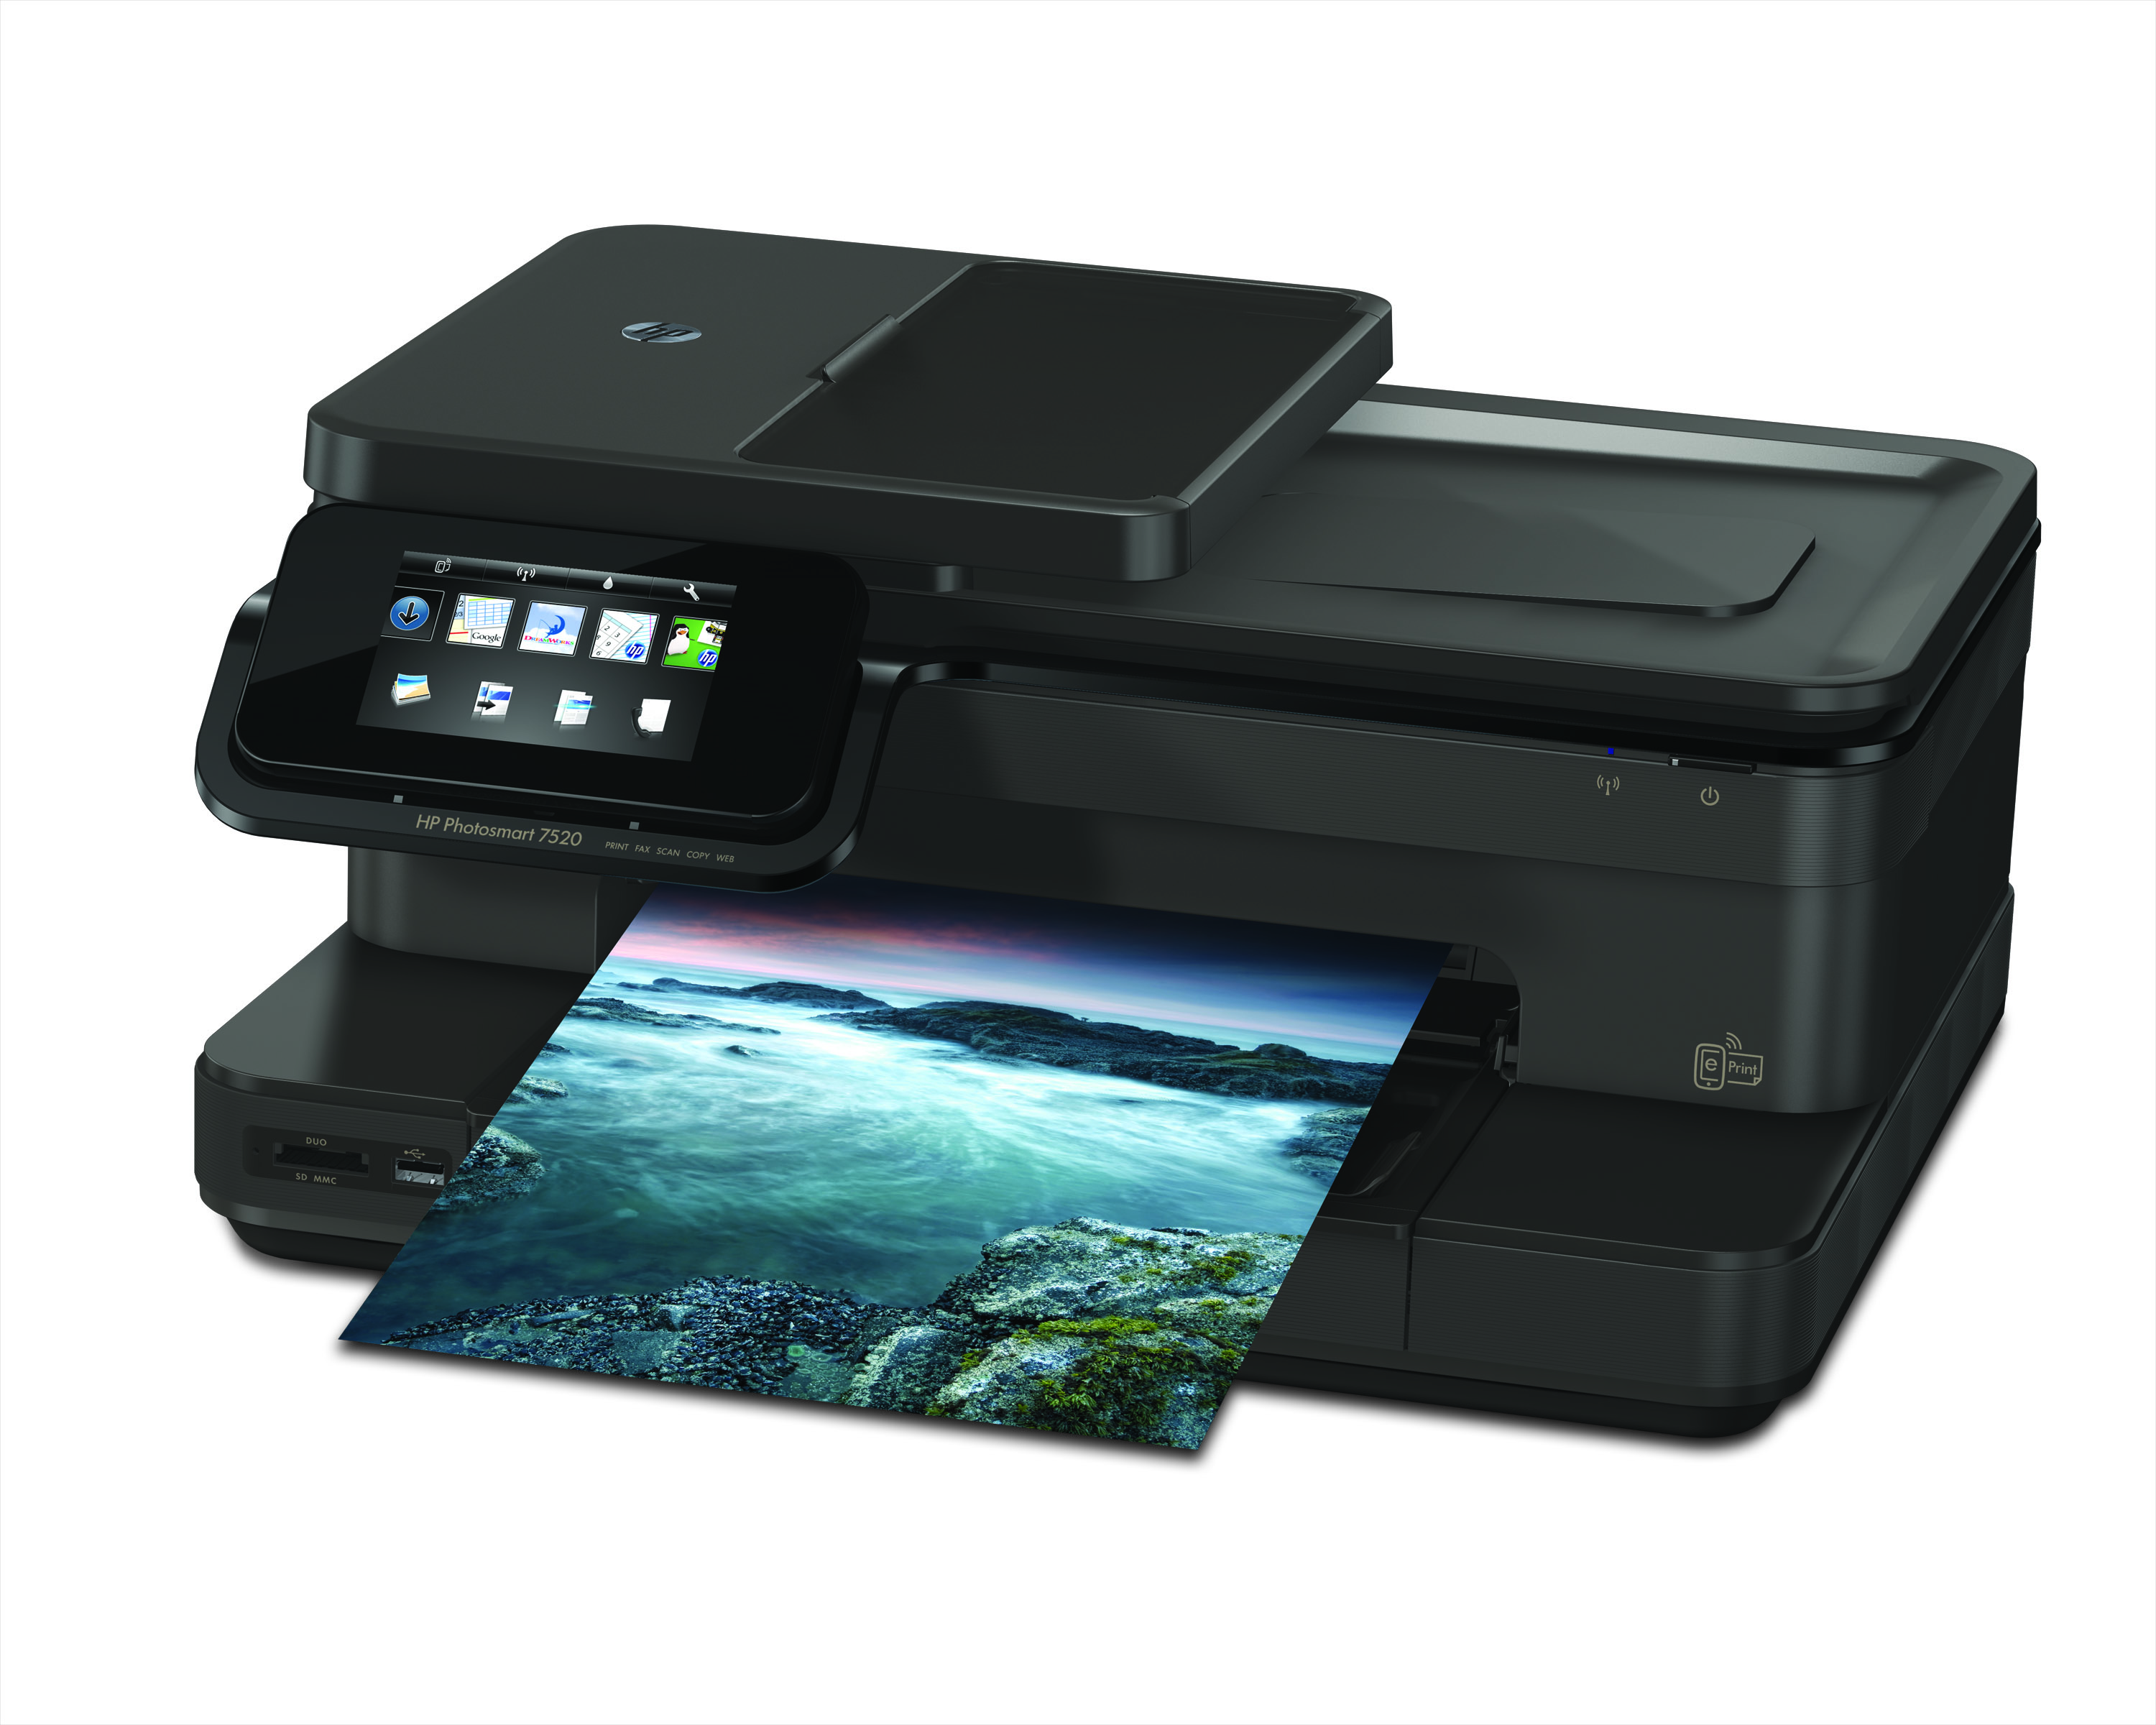 hp 7520 fax hook up Shop bestbuycom for a network-ready all-in-one wireless printer designed to help you print, scan, copy or fax like a pro.